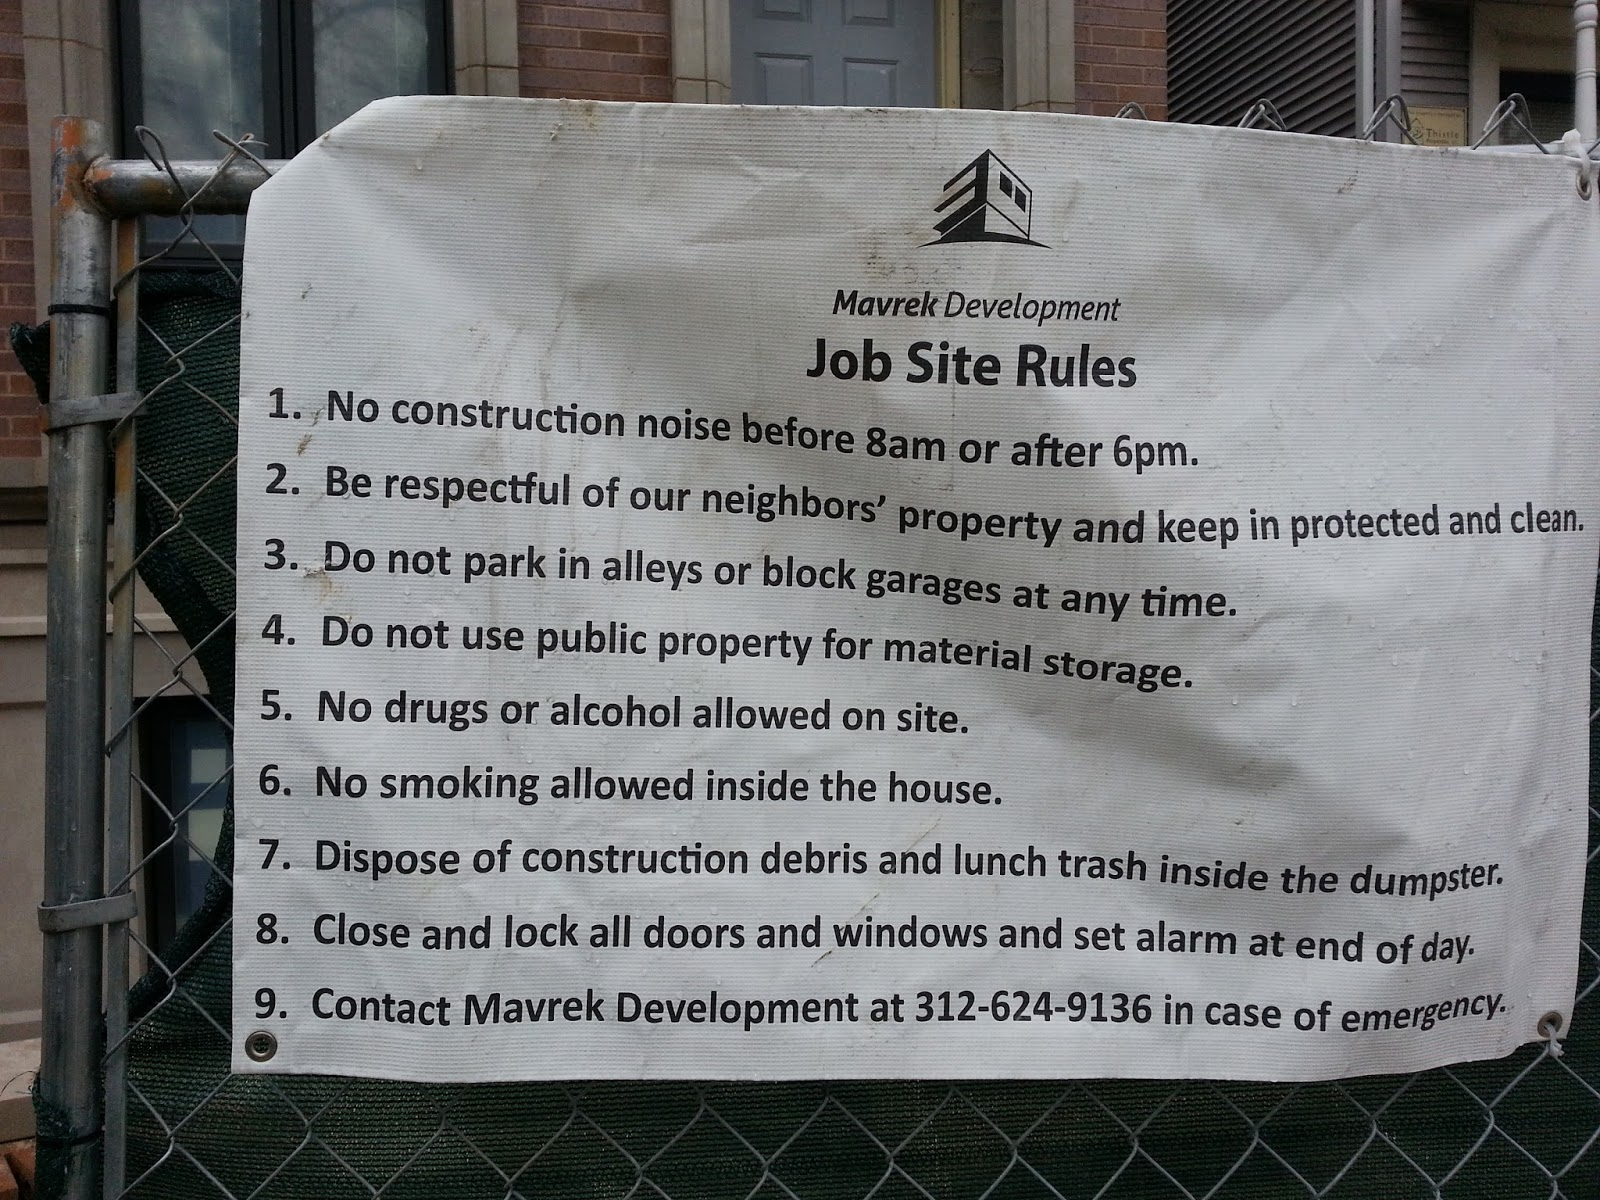 the chicago real estate local lakeview house builder plays by the i don t see this often and think it s a very good idea for developers and builders hopefully the construction has gone as well as this neighborly gesture